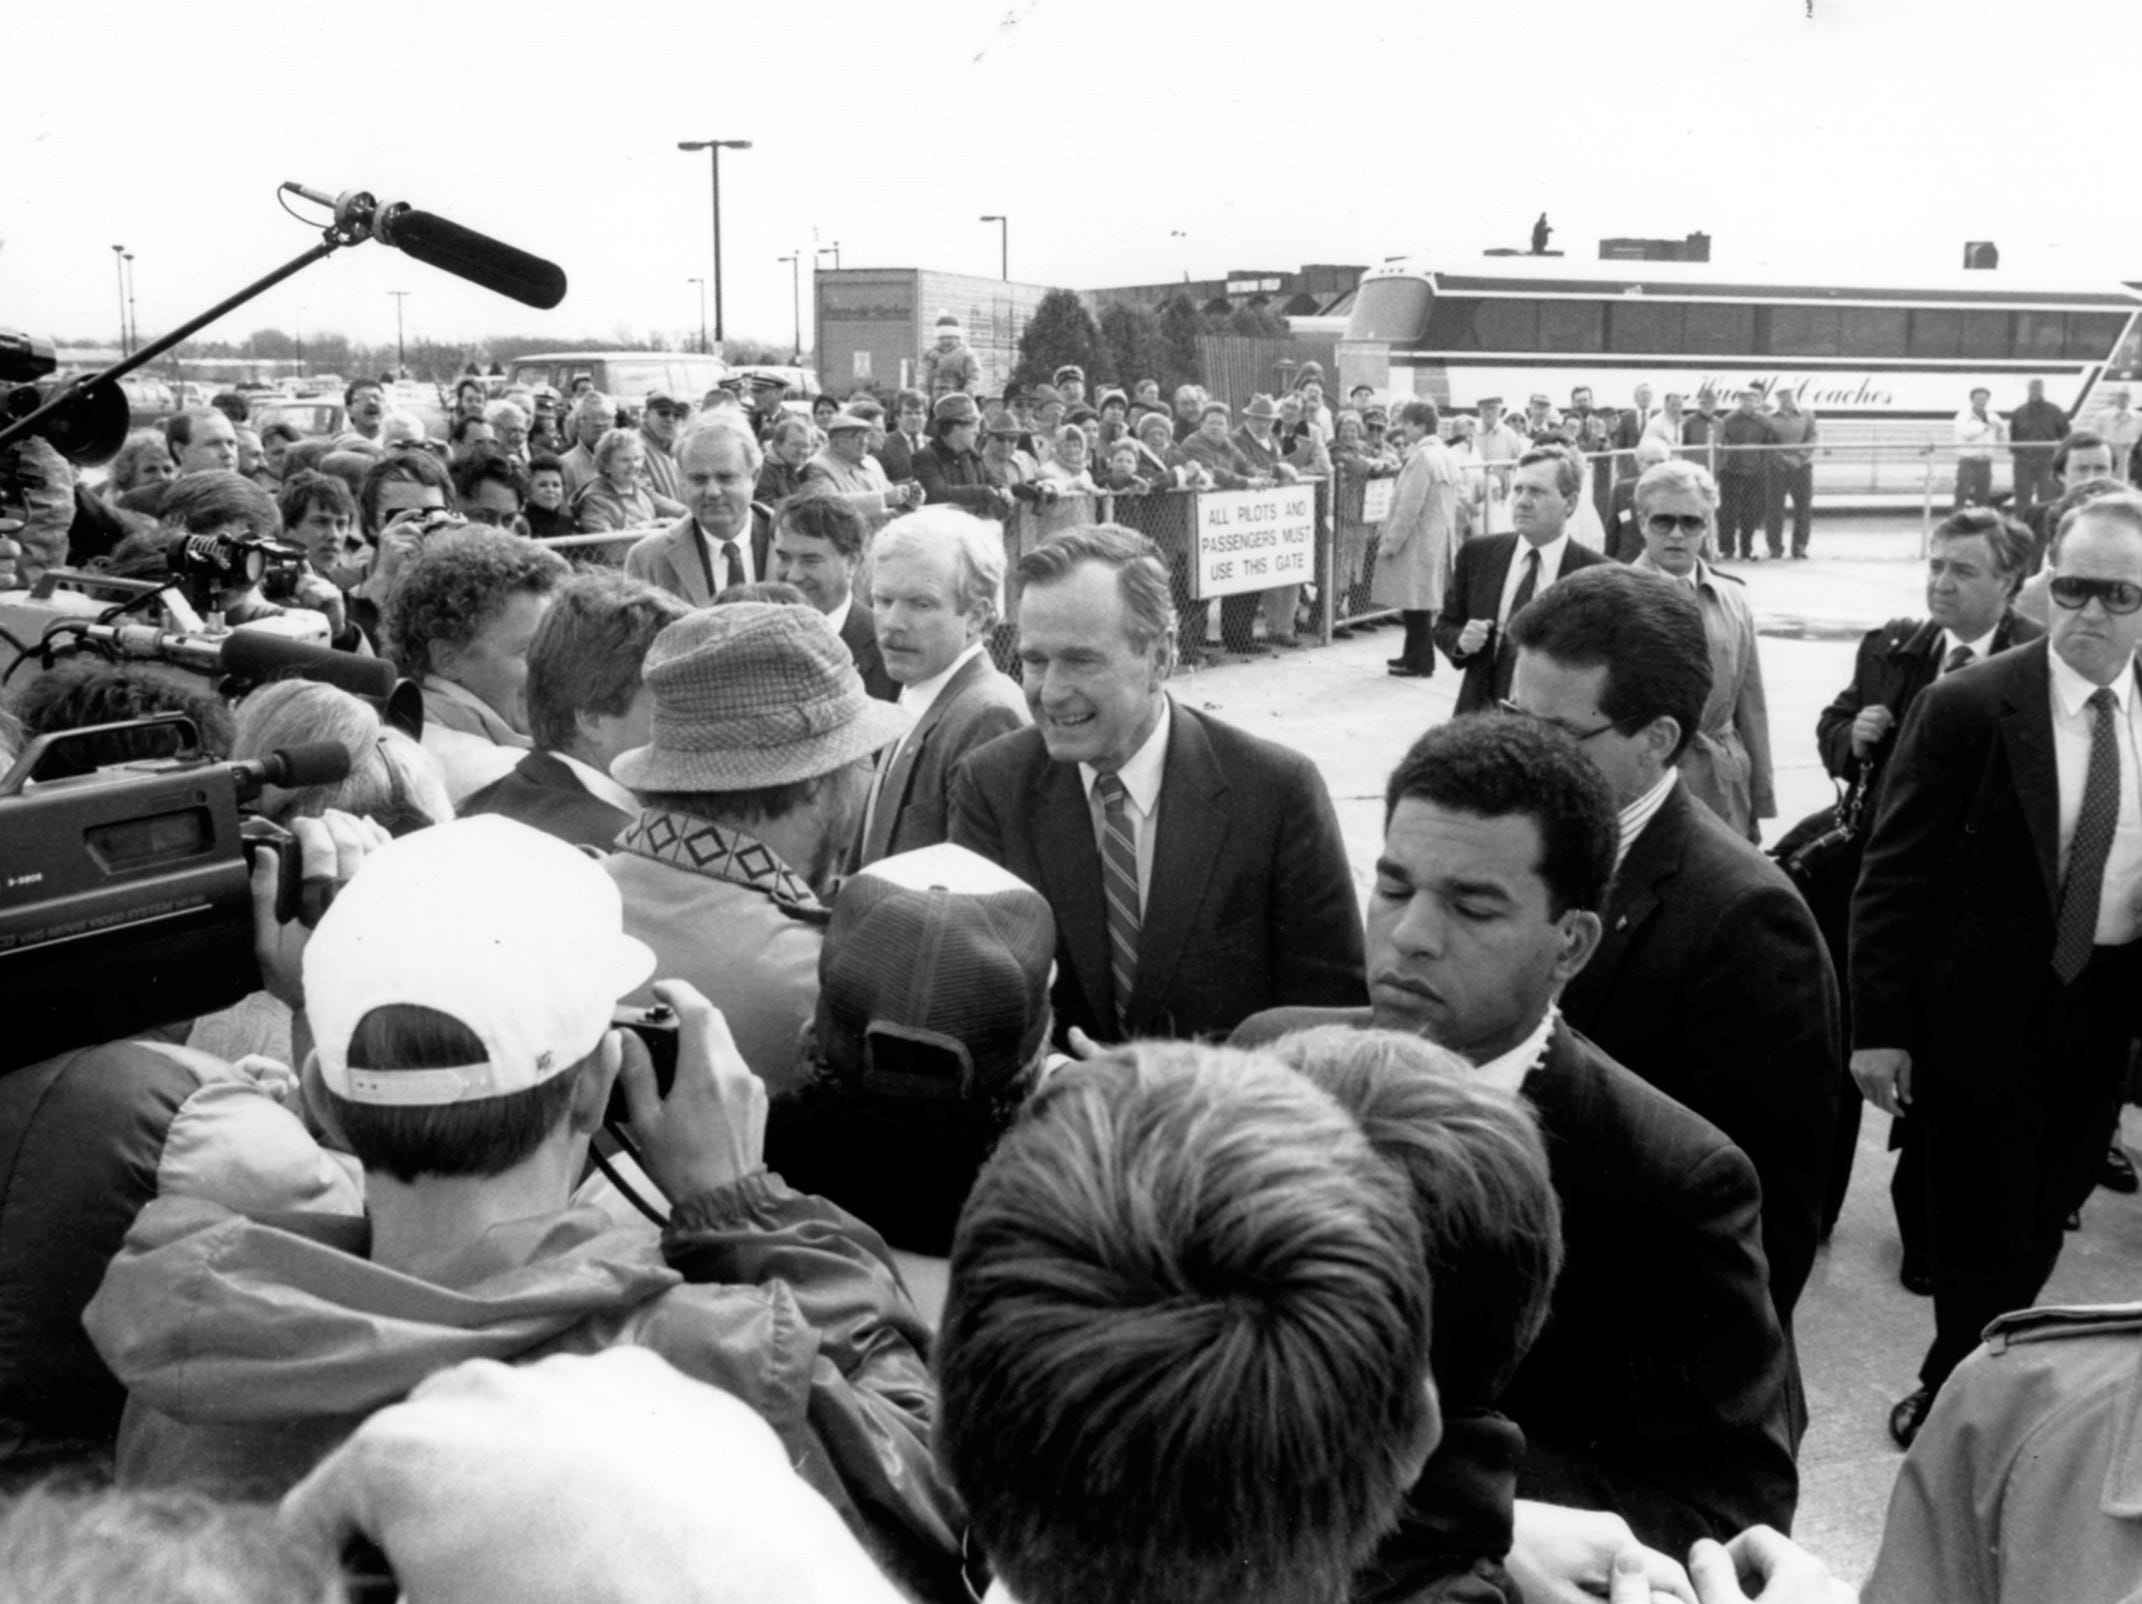 March 29, 1988. Vice president George H. W. Bush greets supporters March 29, 1988 at Wittman Field in Oshkosh. Post-Crescent photo by Ed Deschler.